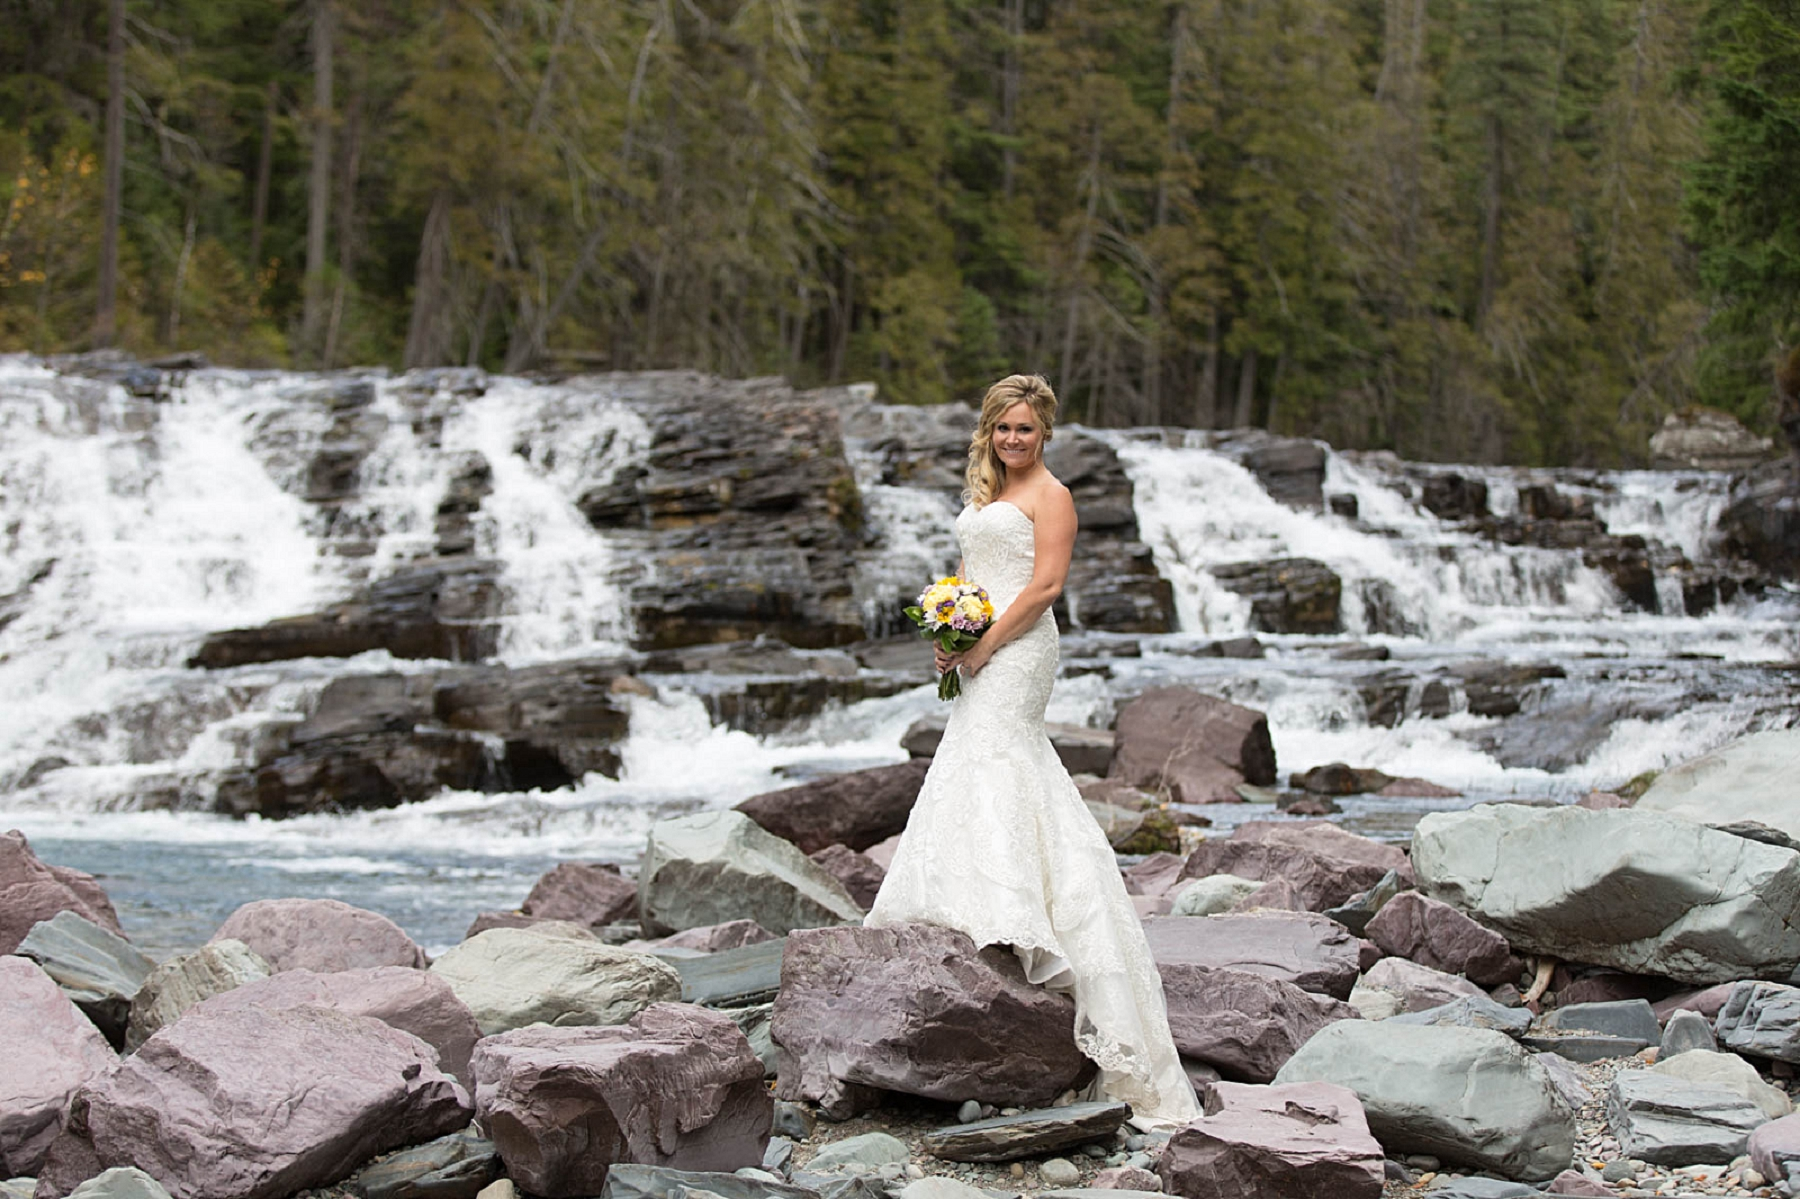 Jennifer_Mooney_photo_day_after_session_glacier_park_elegant_wedding_bride_groom_destination_-6.jpg